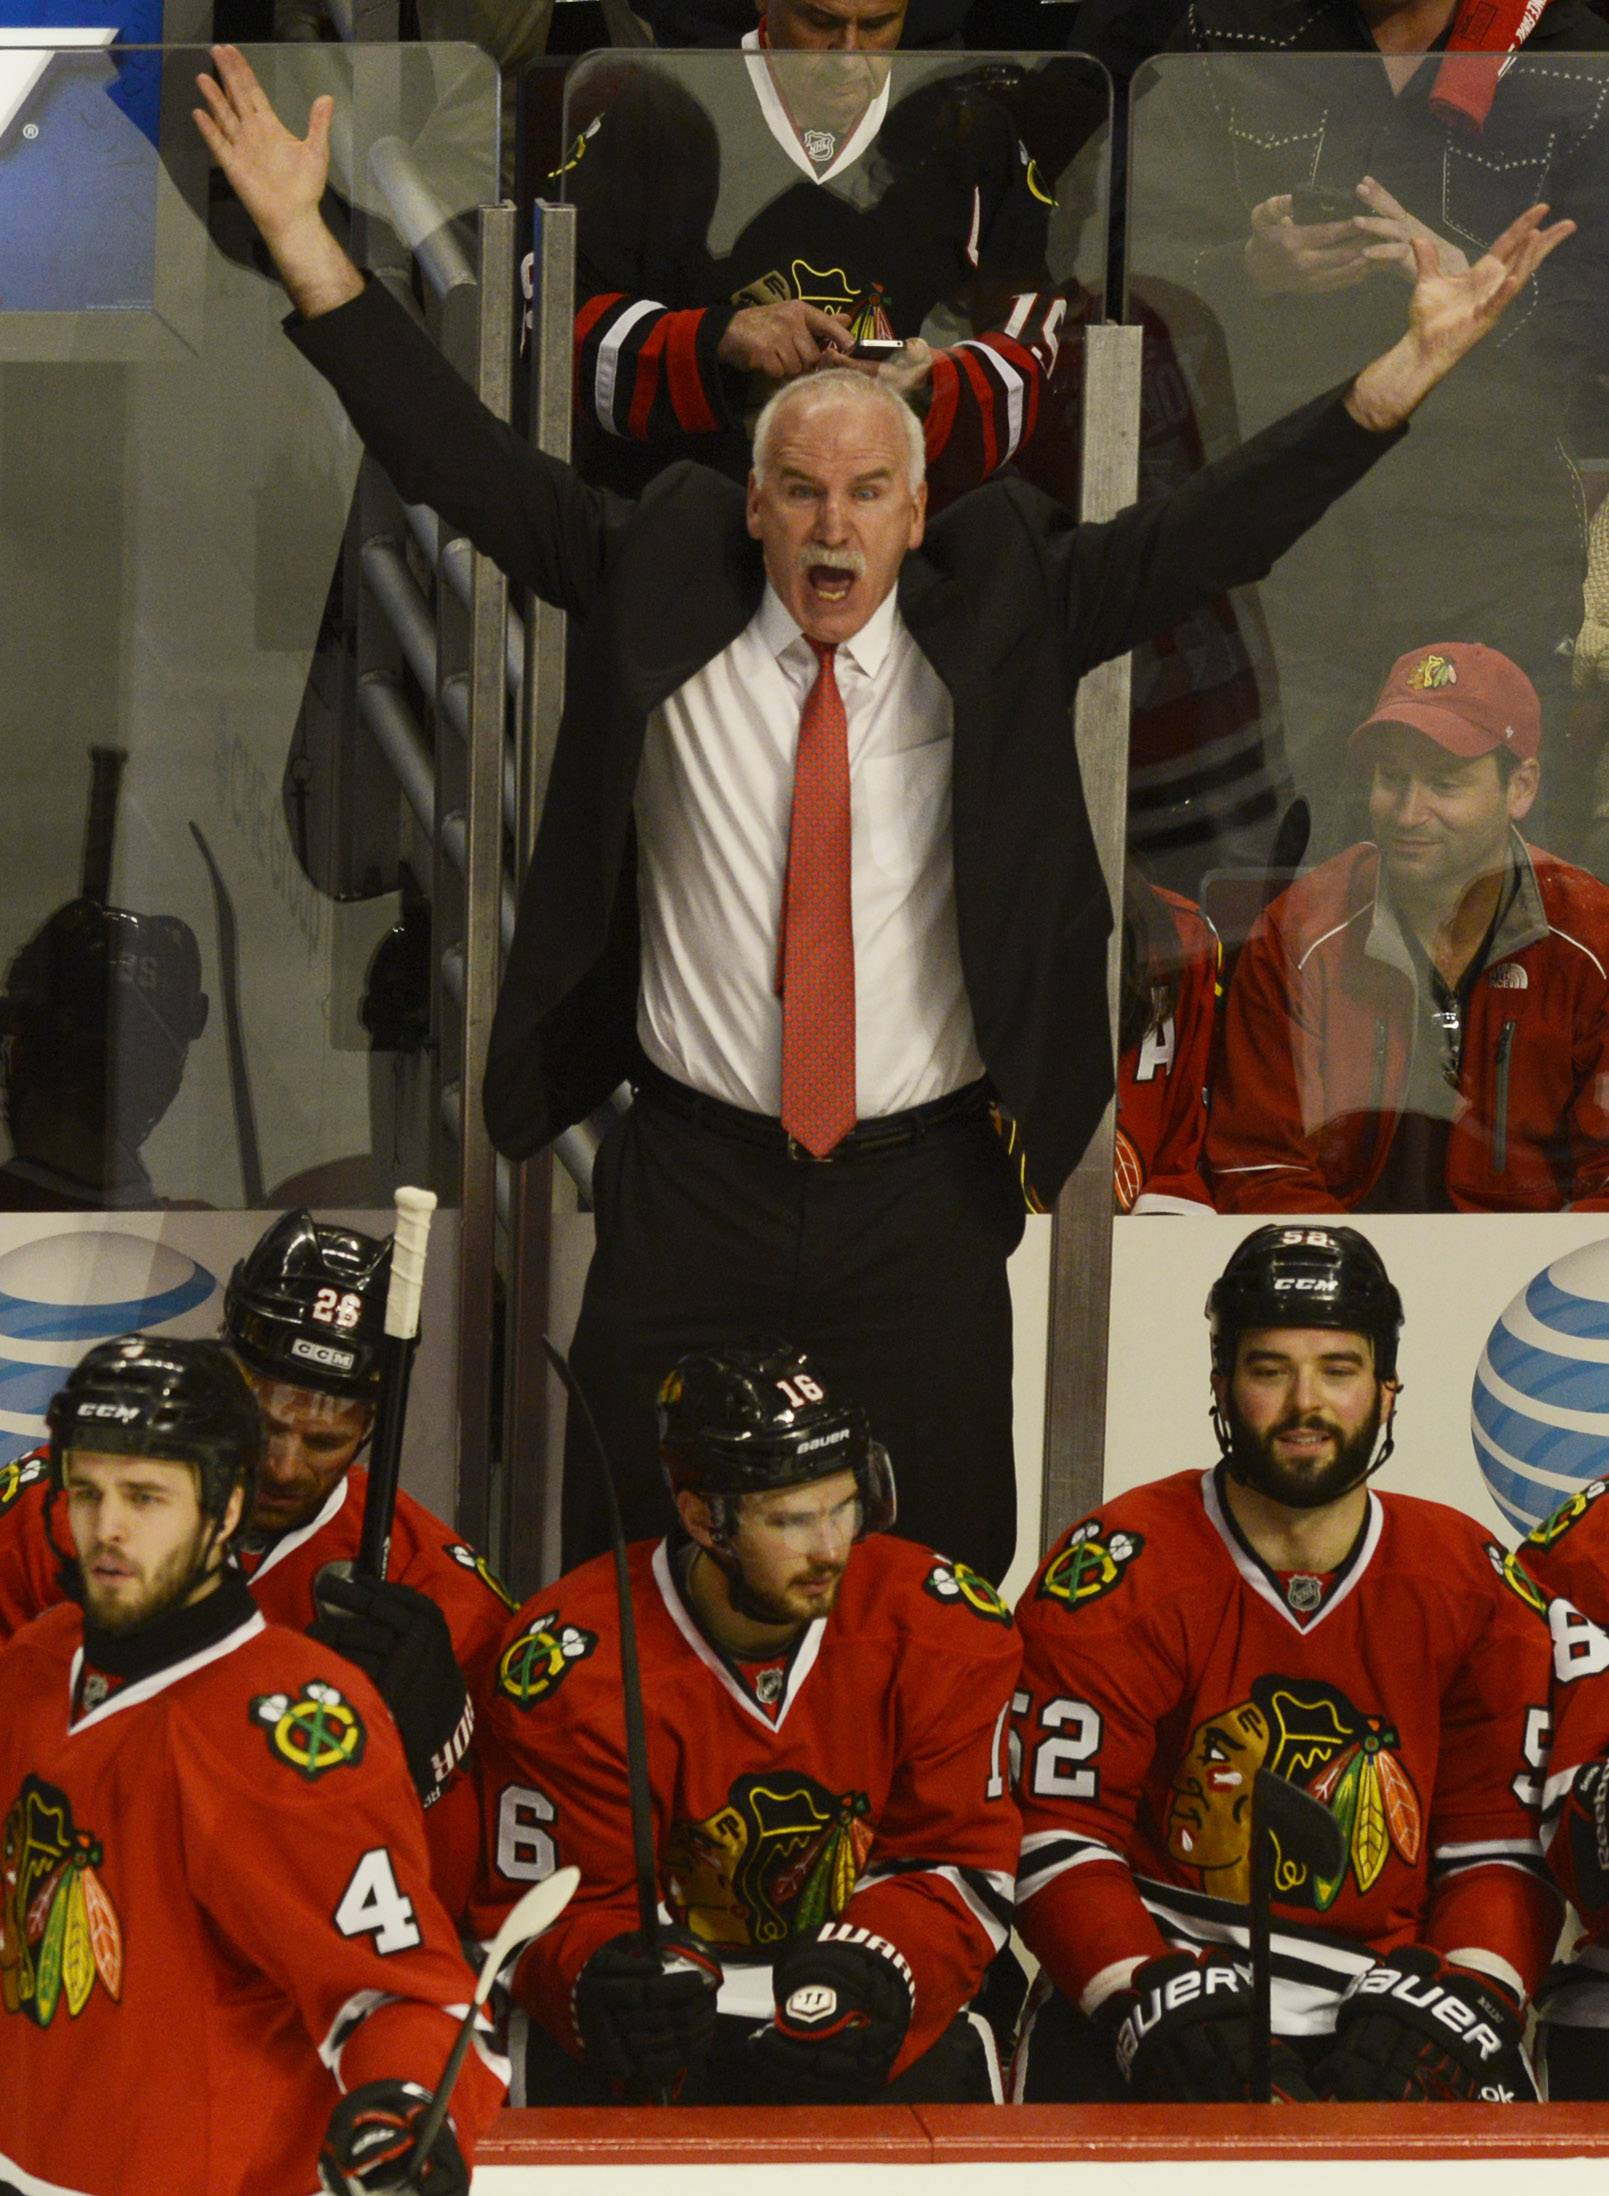 Blackhawks coach Joel Quenneville shows his displeasure from the bench after a second-period goal was disallowed during Sunday's game at the United Center in Chicago.